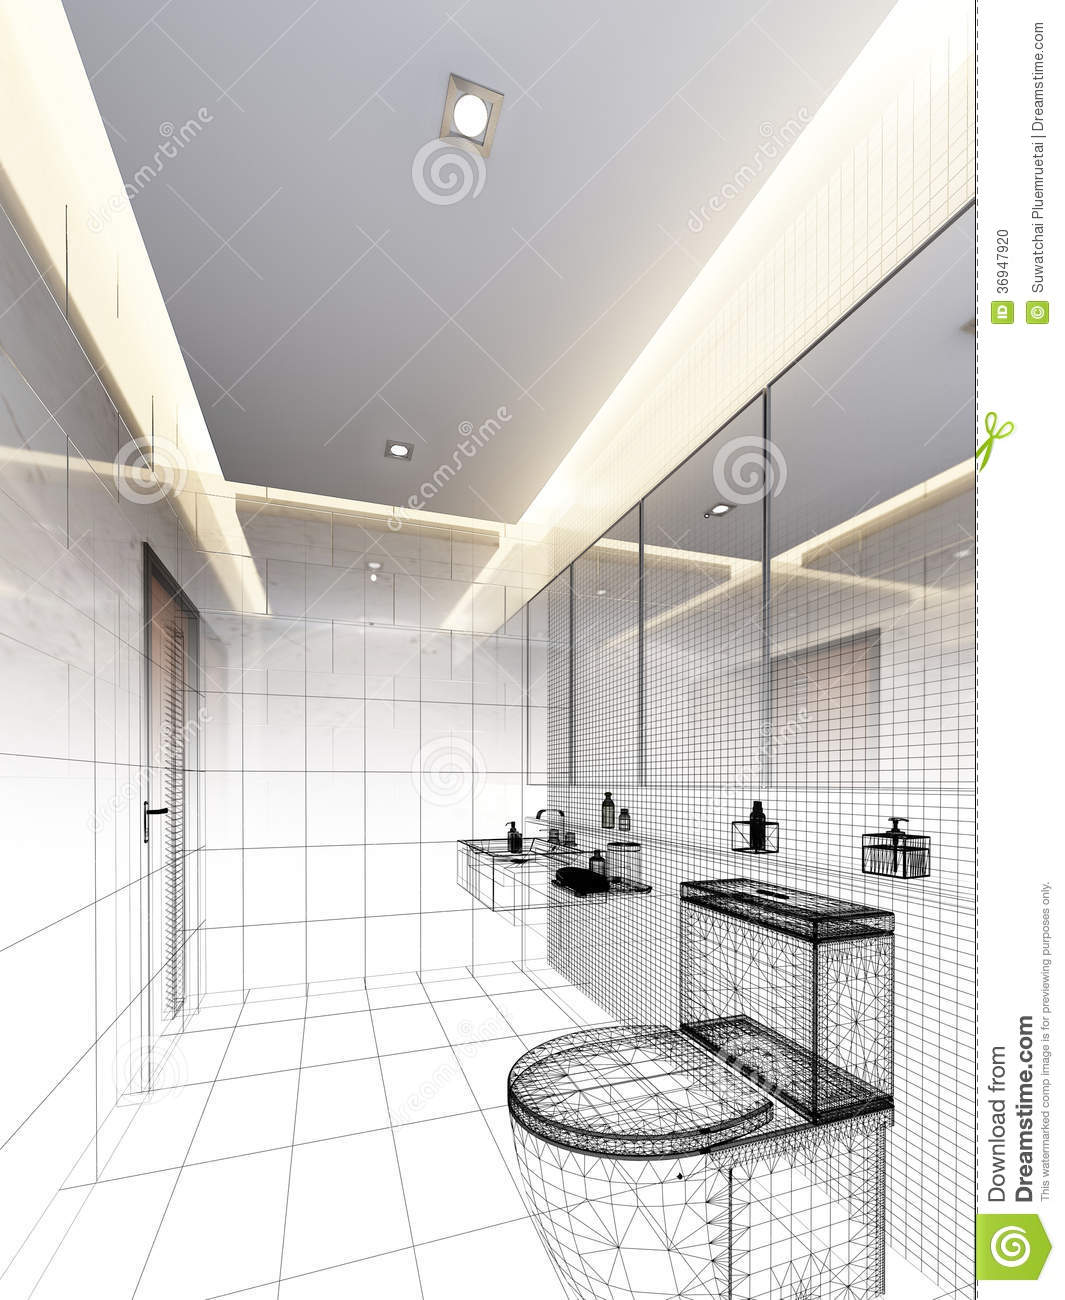 Sketch Design Of Interior Bathroom Stock Photo Image 36947920